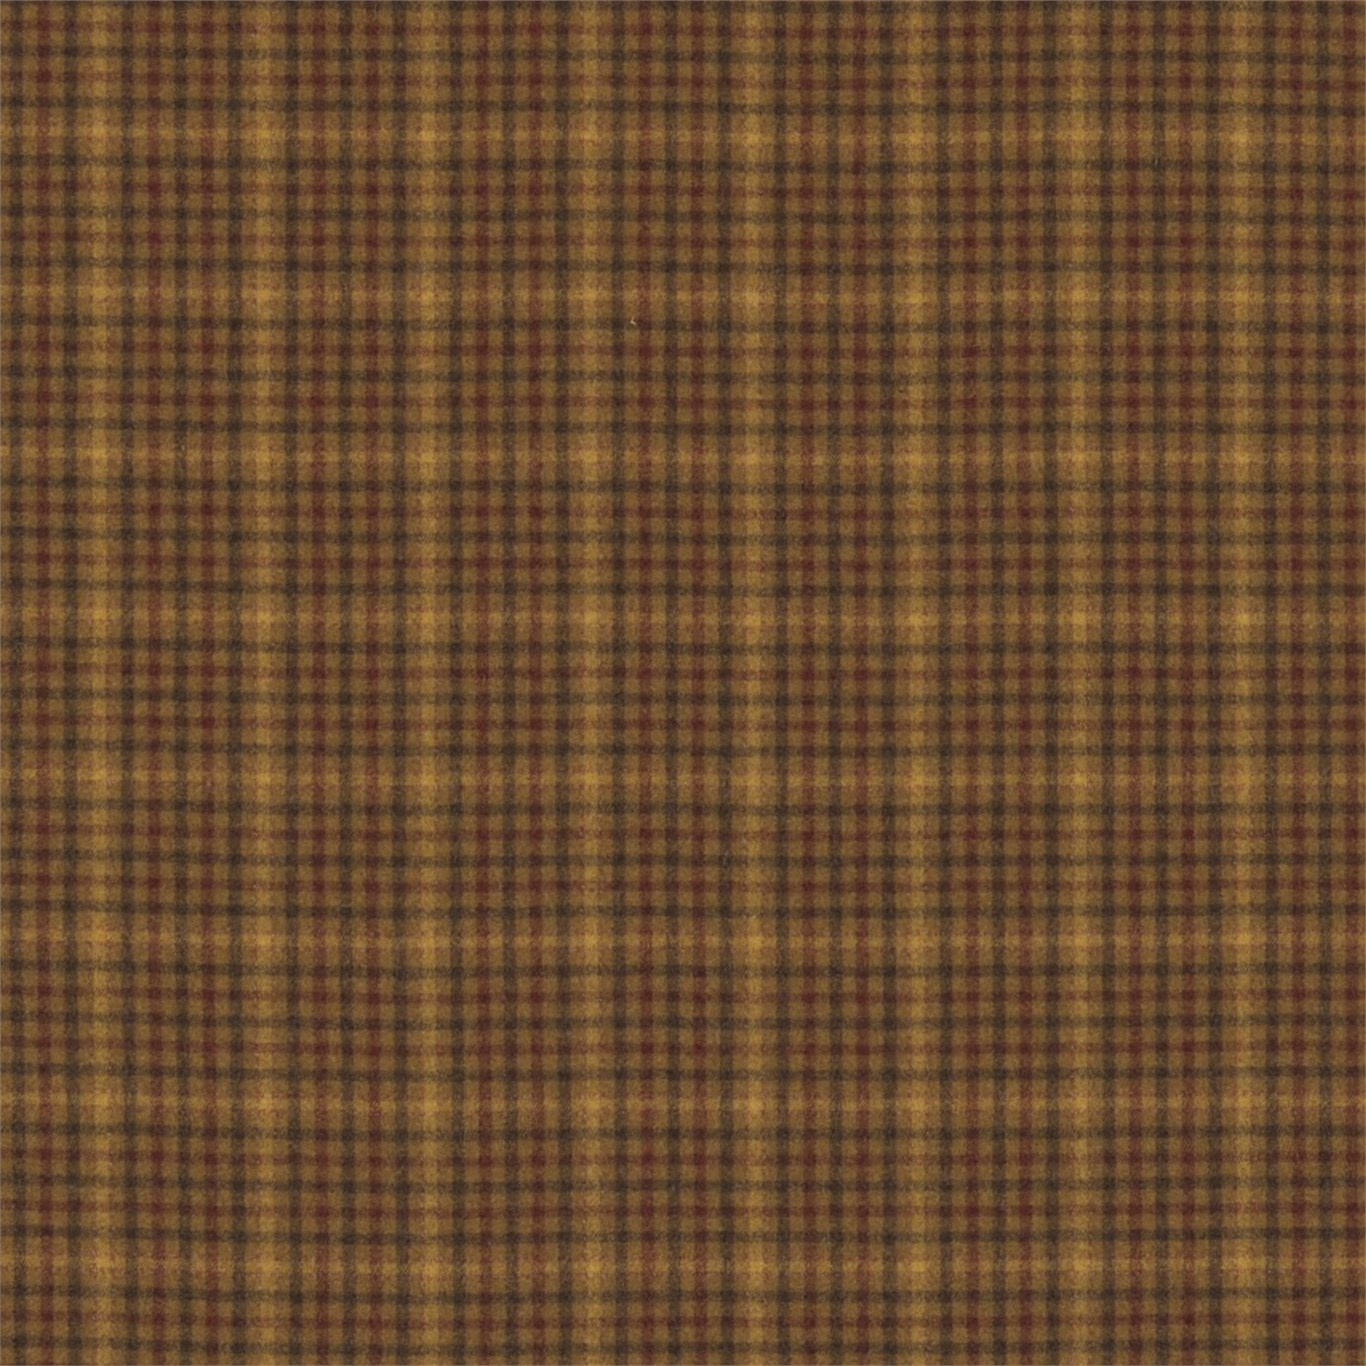 Image of Sanderson Langtry Caramel/Burgundy Fabric 233264